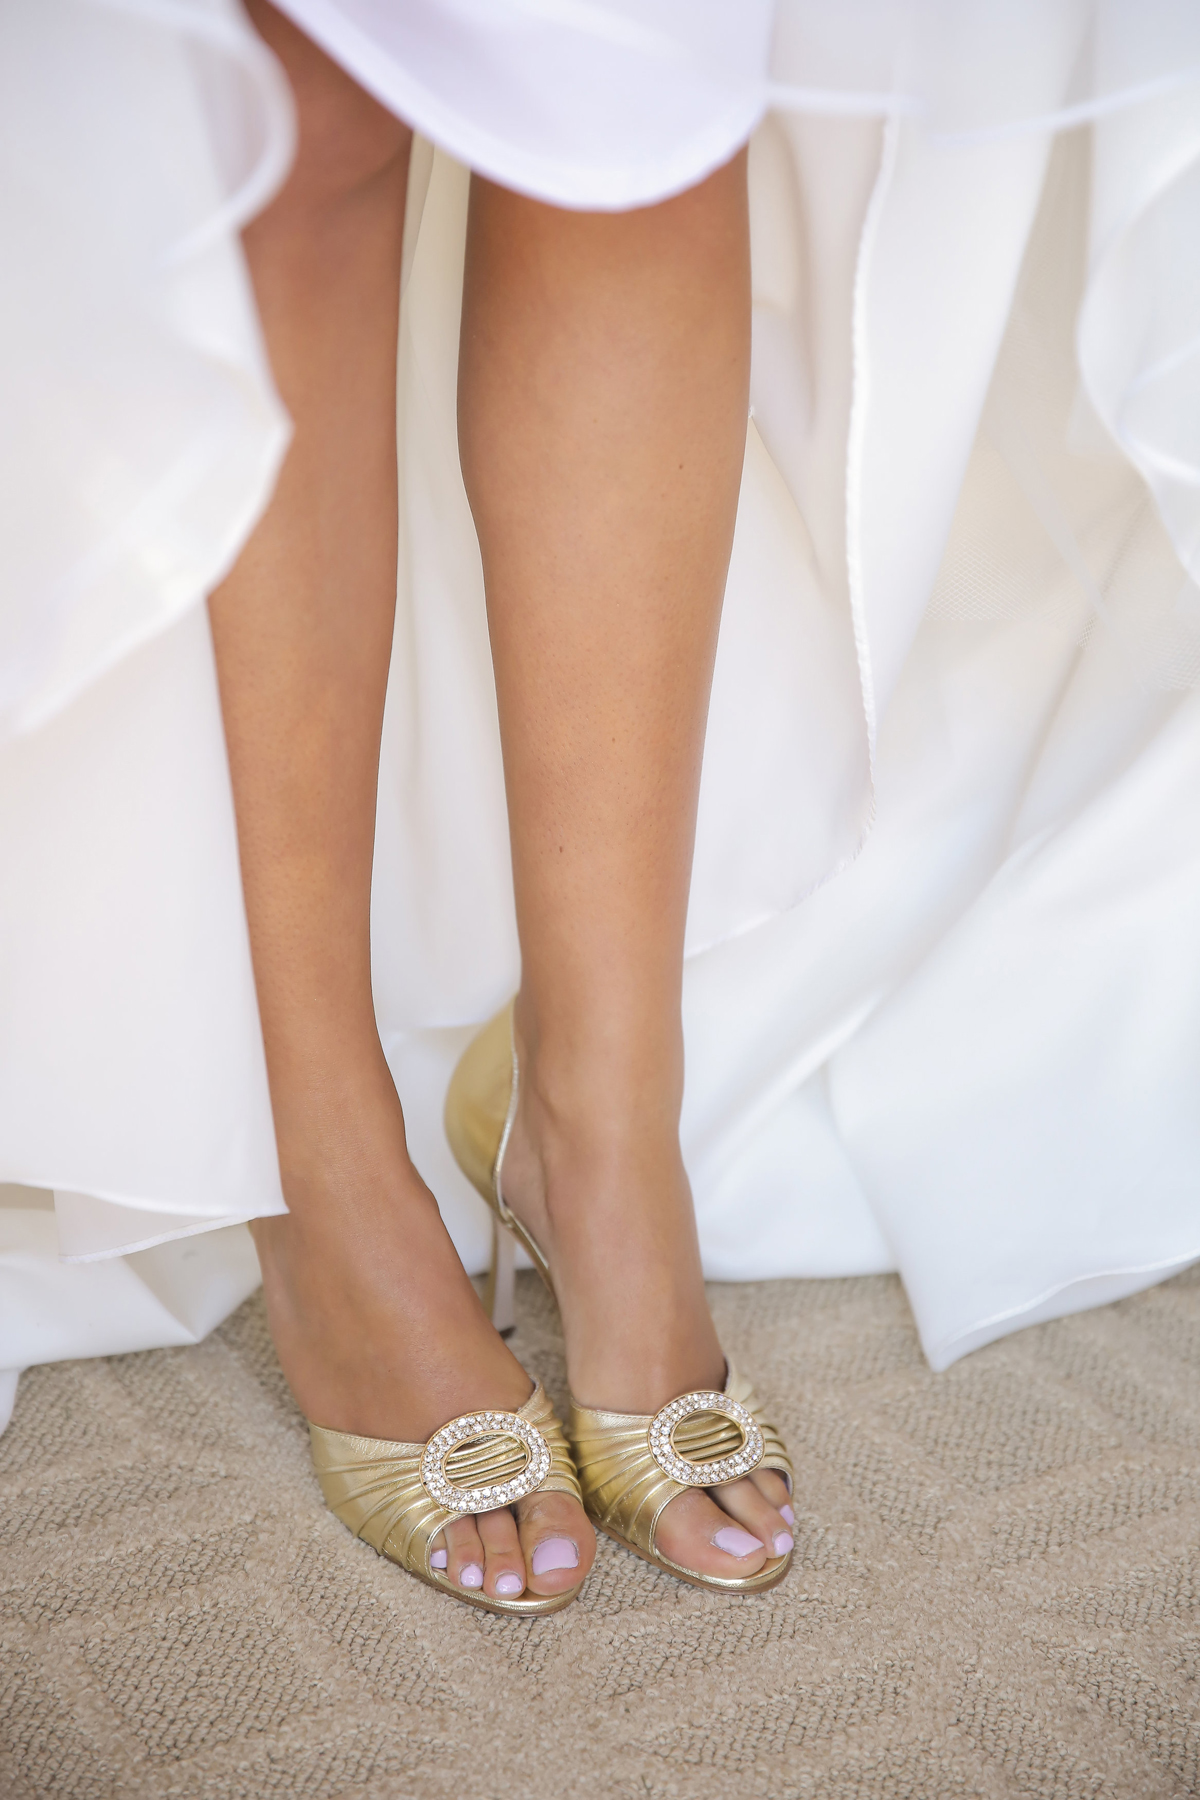 b2507629ff43 Manolo Blahnik Bridal Shoes Elizabeth Anne Designs The Wedding Blog